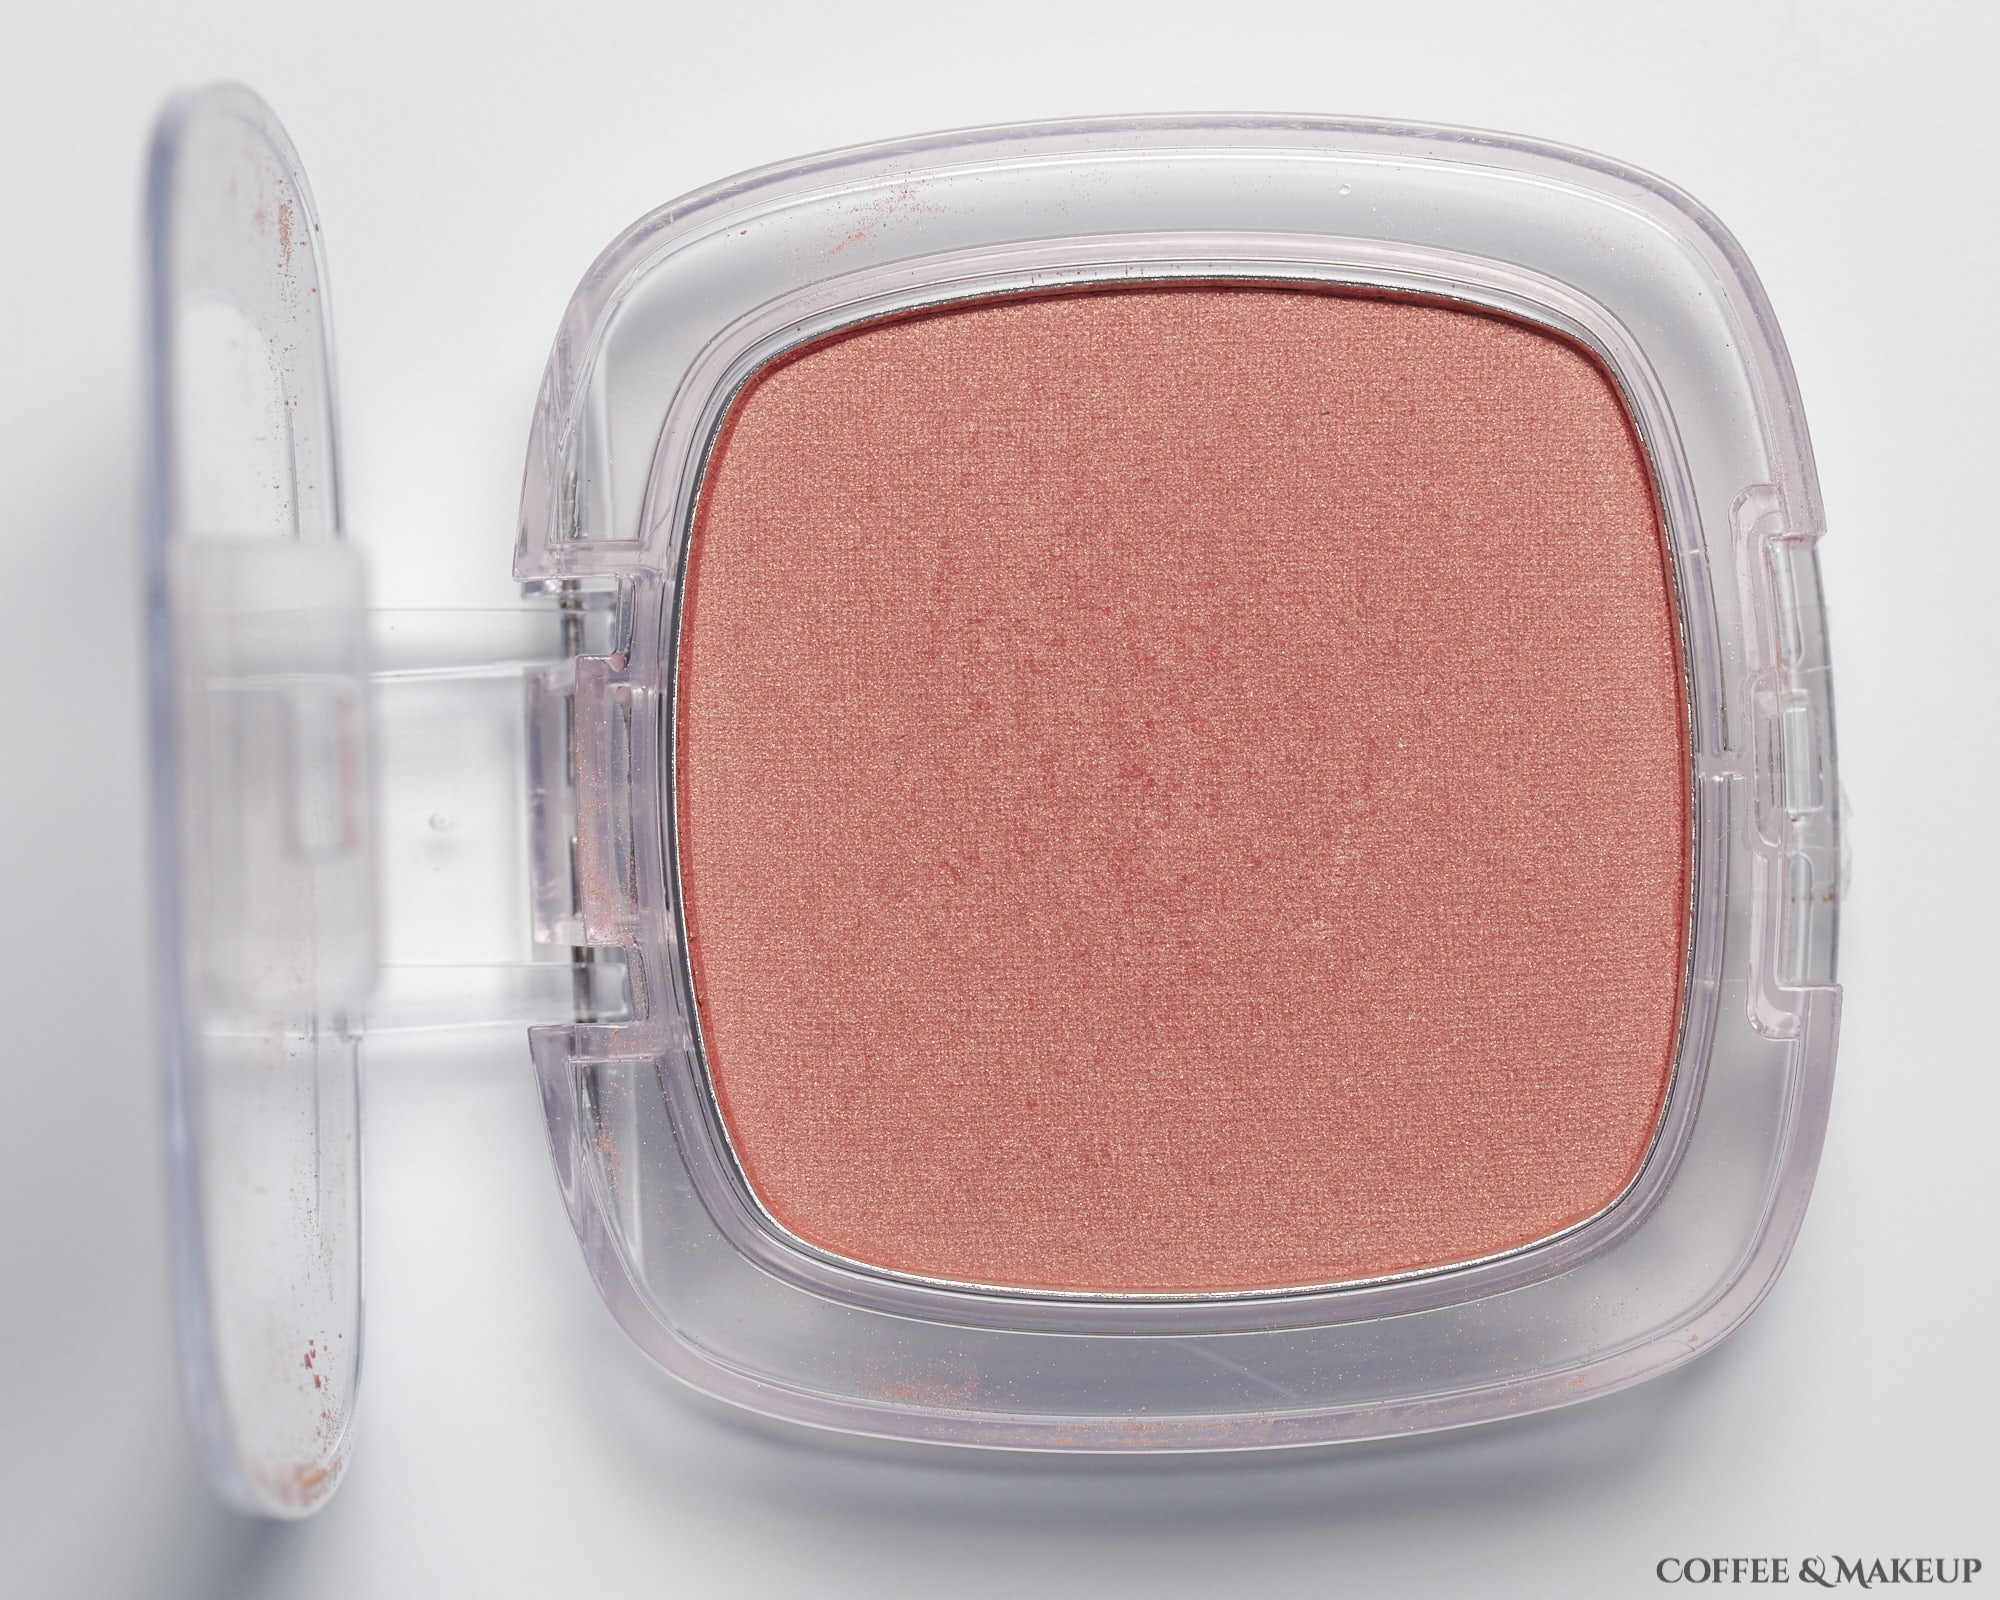 Fantastical | L'Oreal Paradise Enchanted Scented Blush